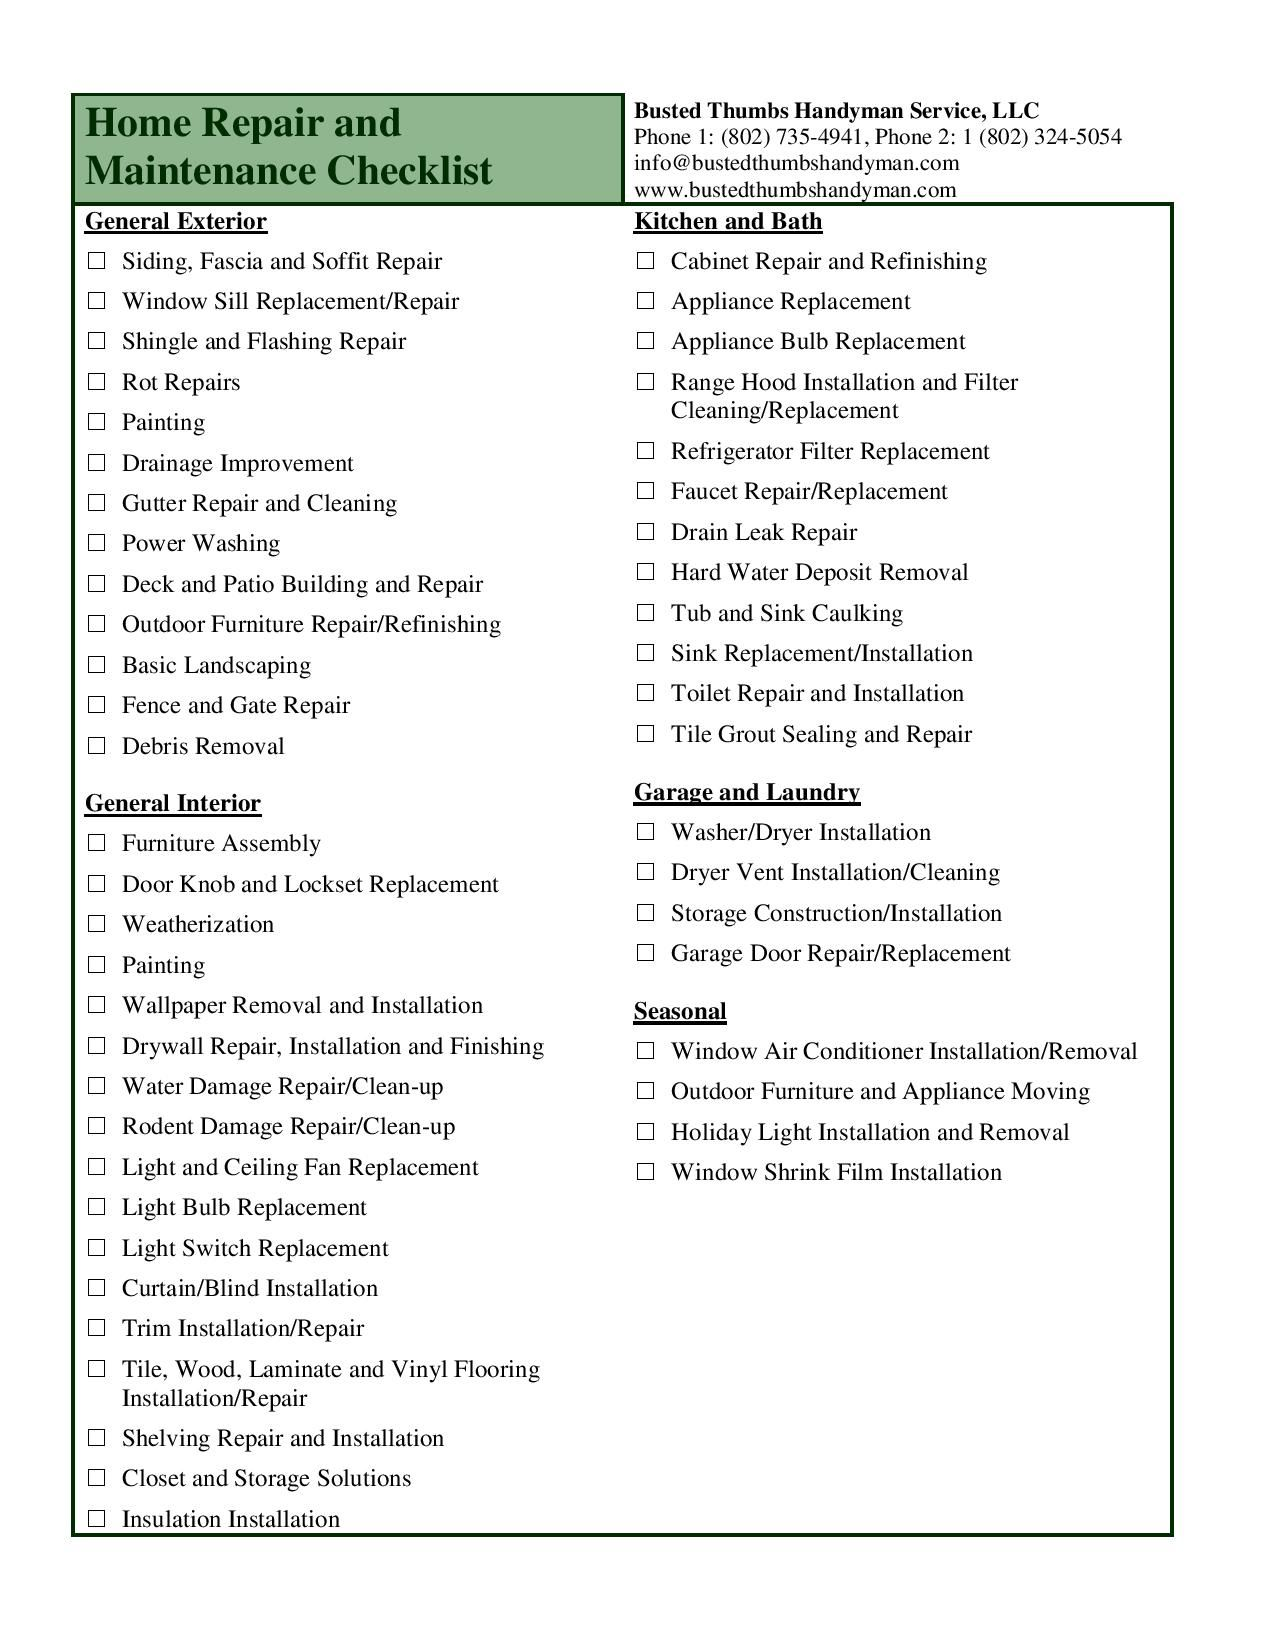 Home Remodeling Project Checklist Mlthree Com For The